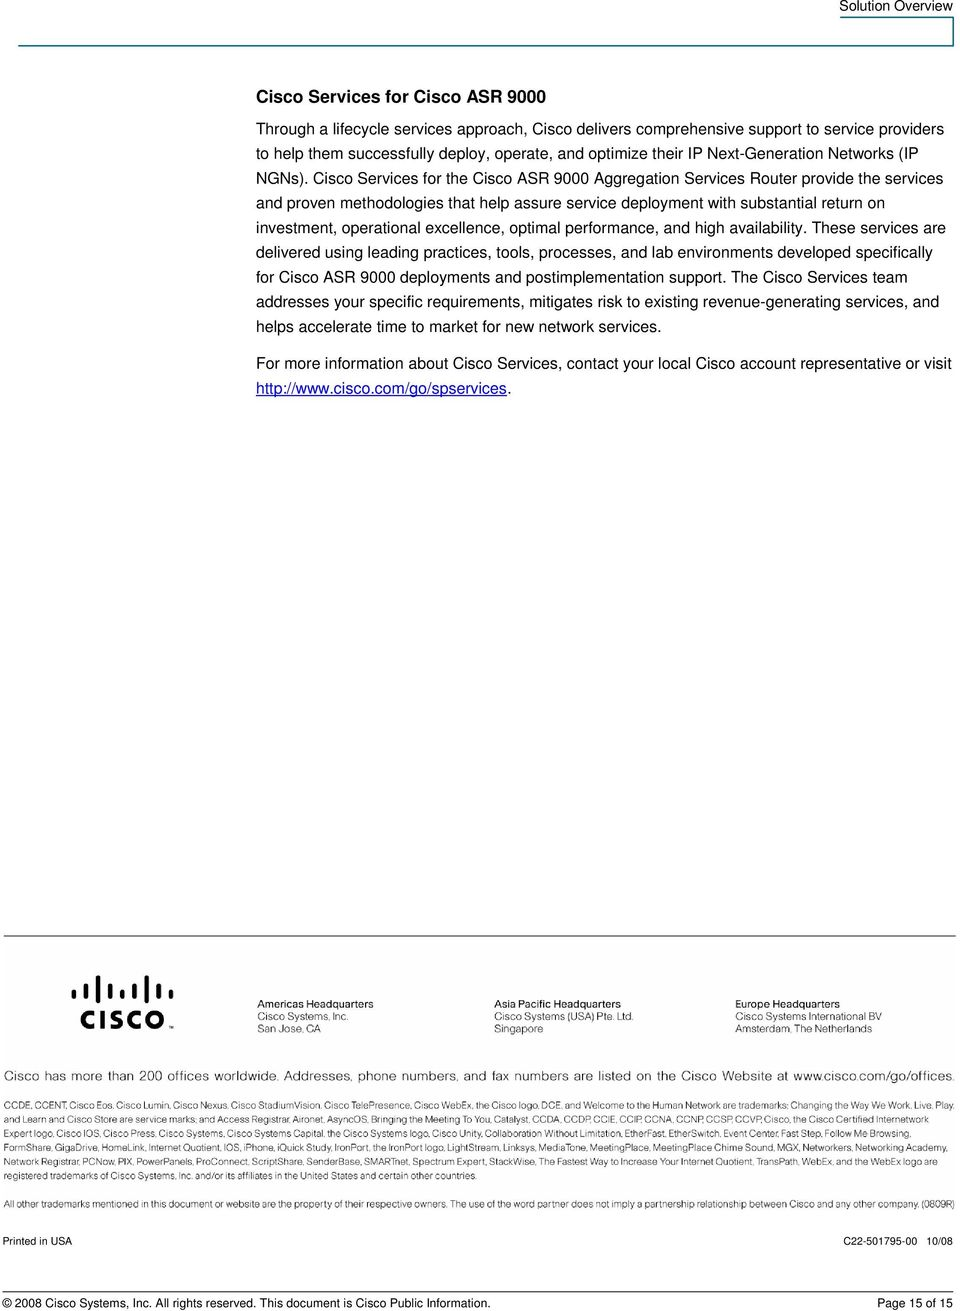 Cisco Services for the Cisco ASR 9000 Aggregation Services Router provide the services and proven methodologies that help assure service deployment with substantial return on investment, operational